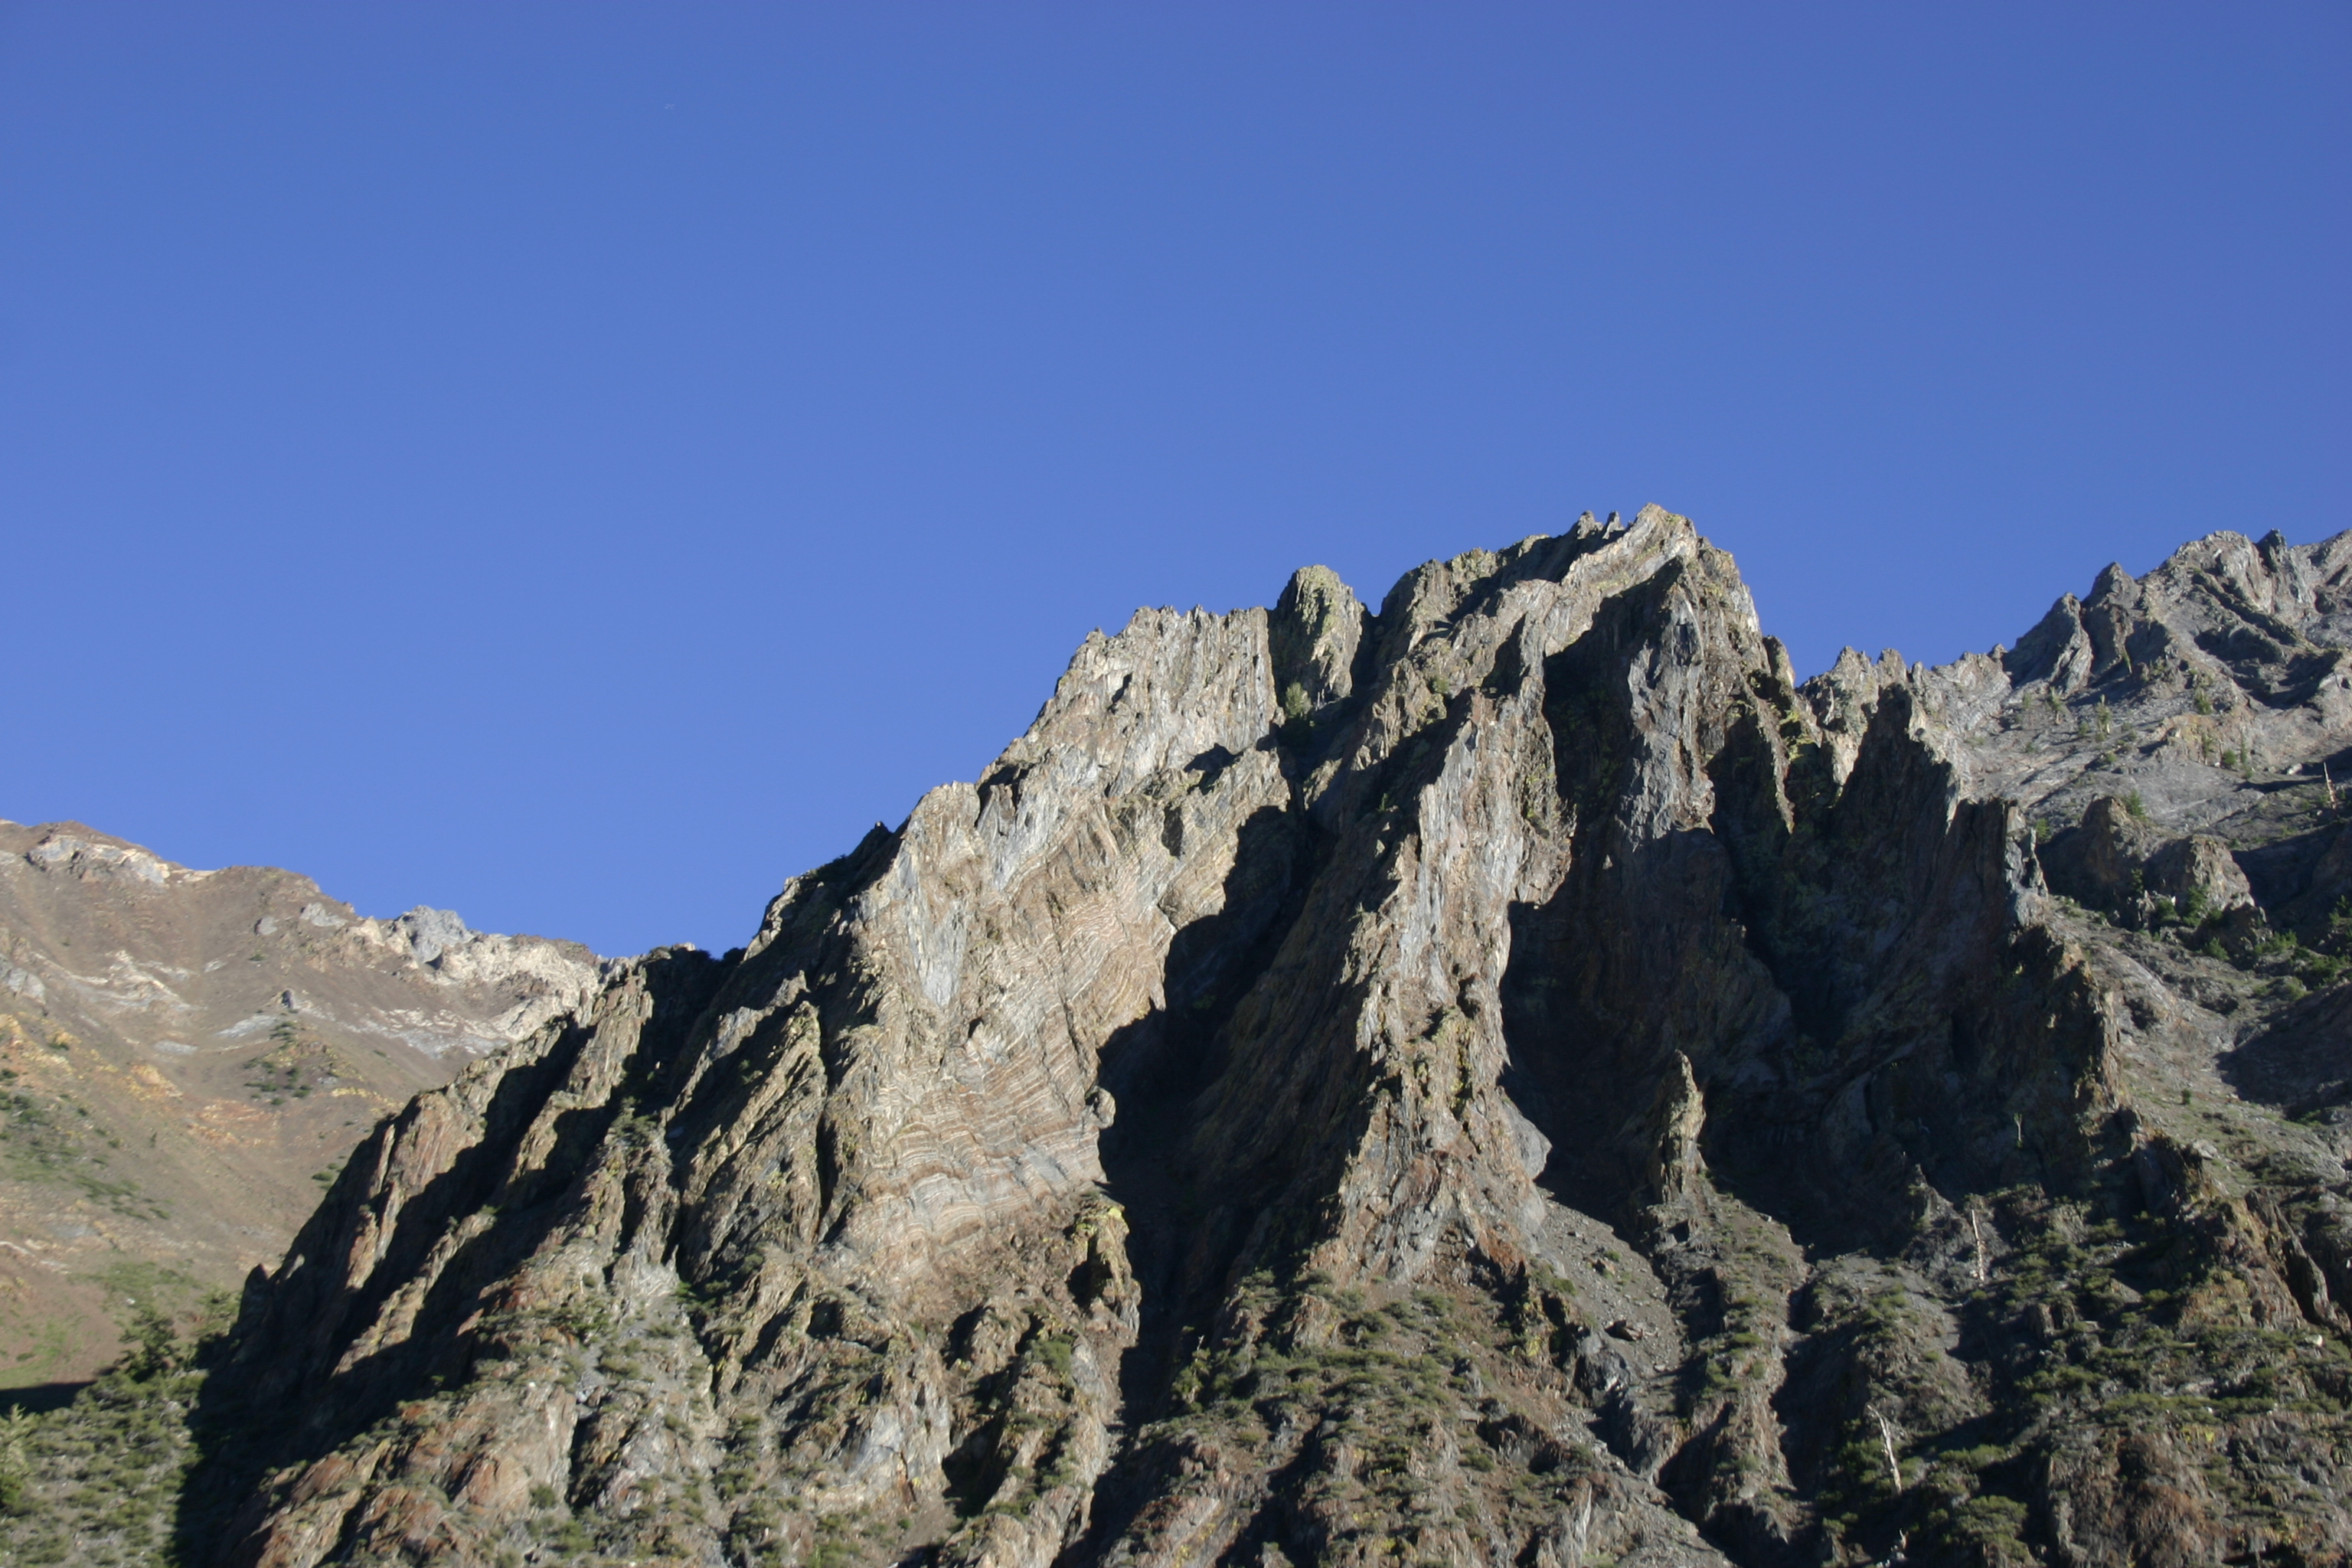 Interesting mountain shapes and shadows near Mammoth Lakes.